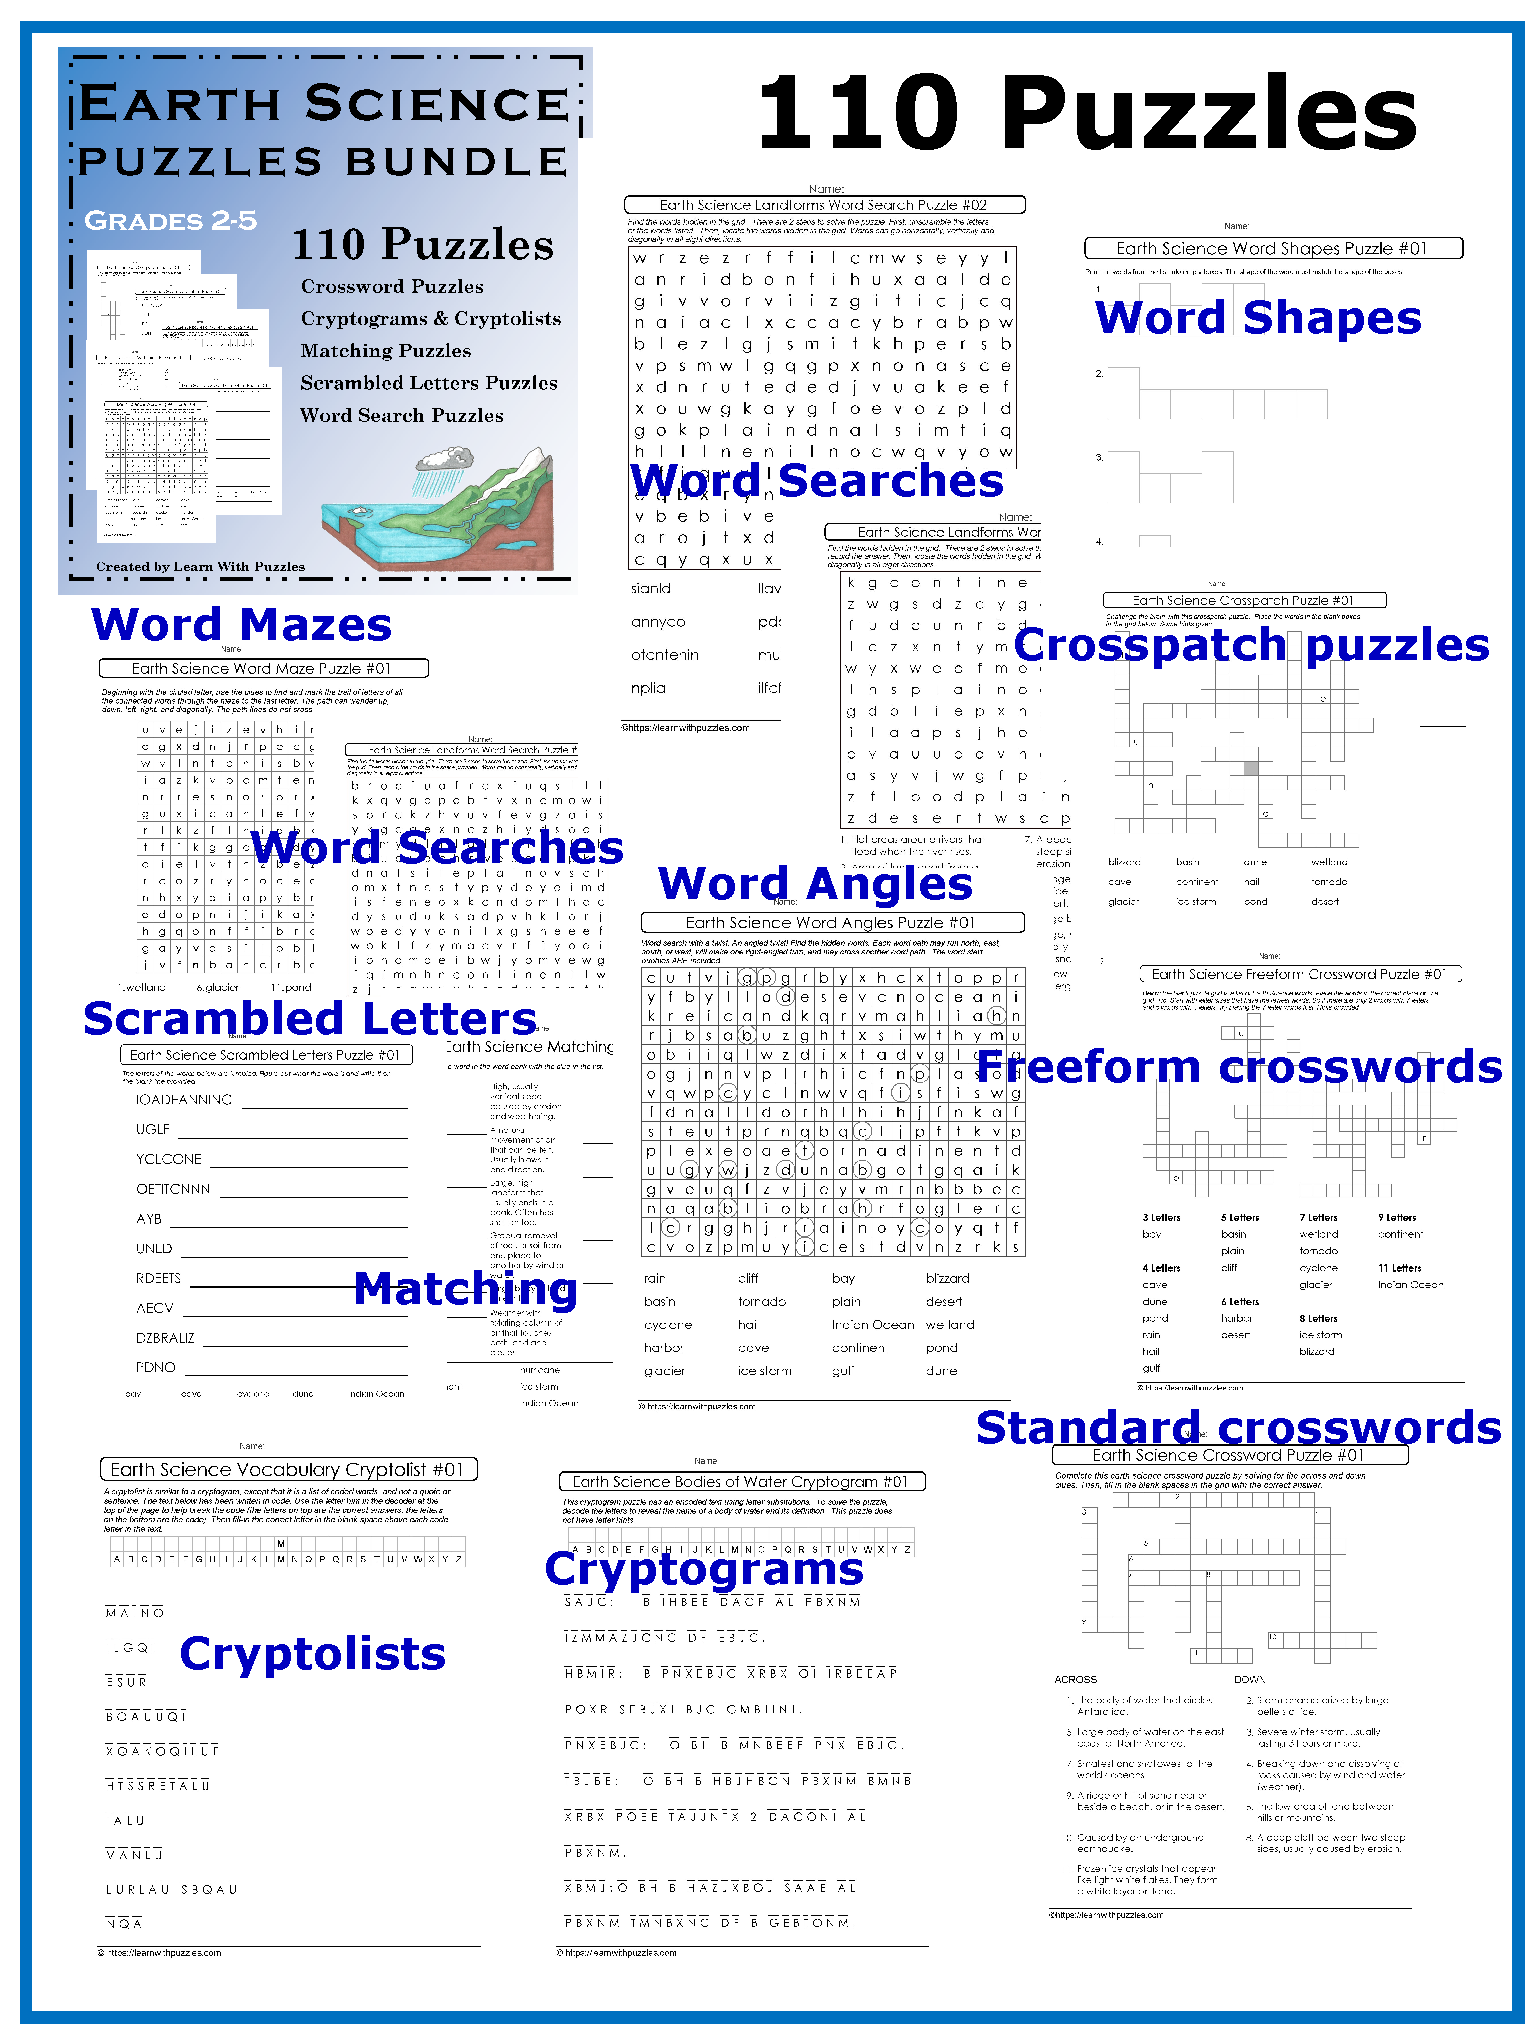 Earth Science Amp Processes Bundle Of Puzzles